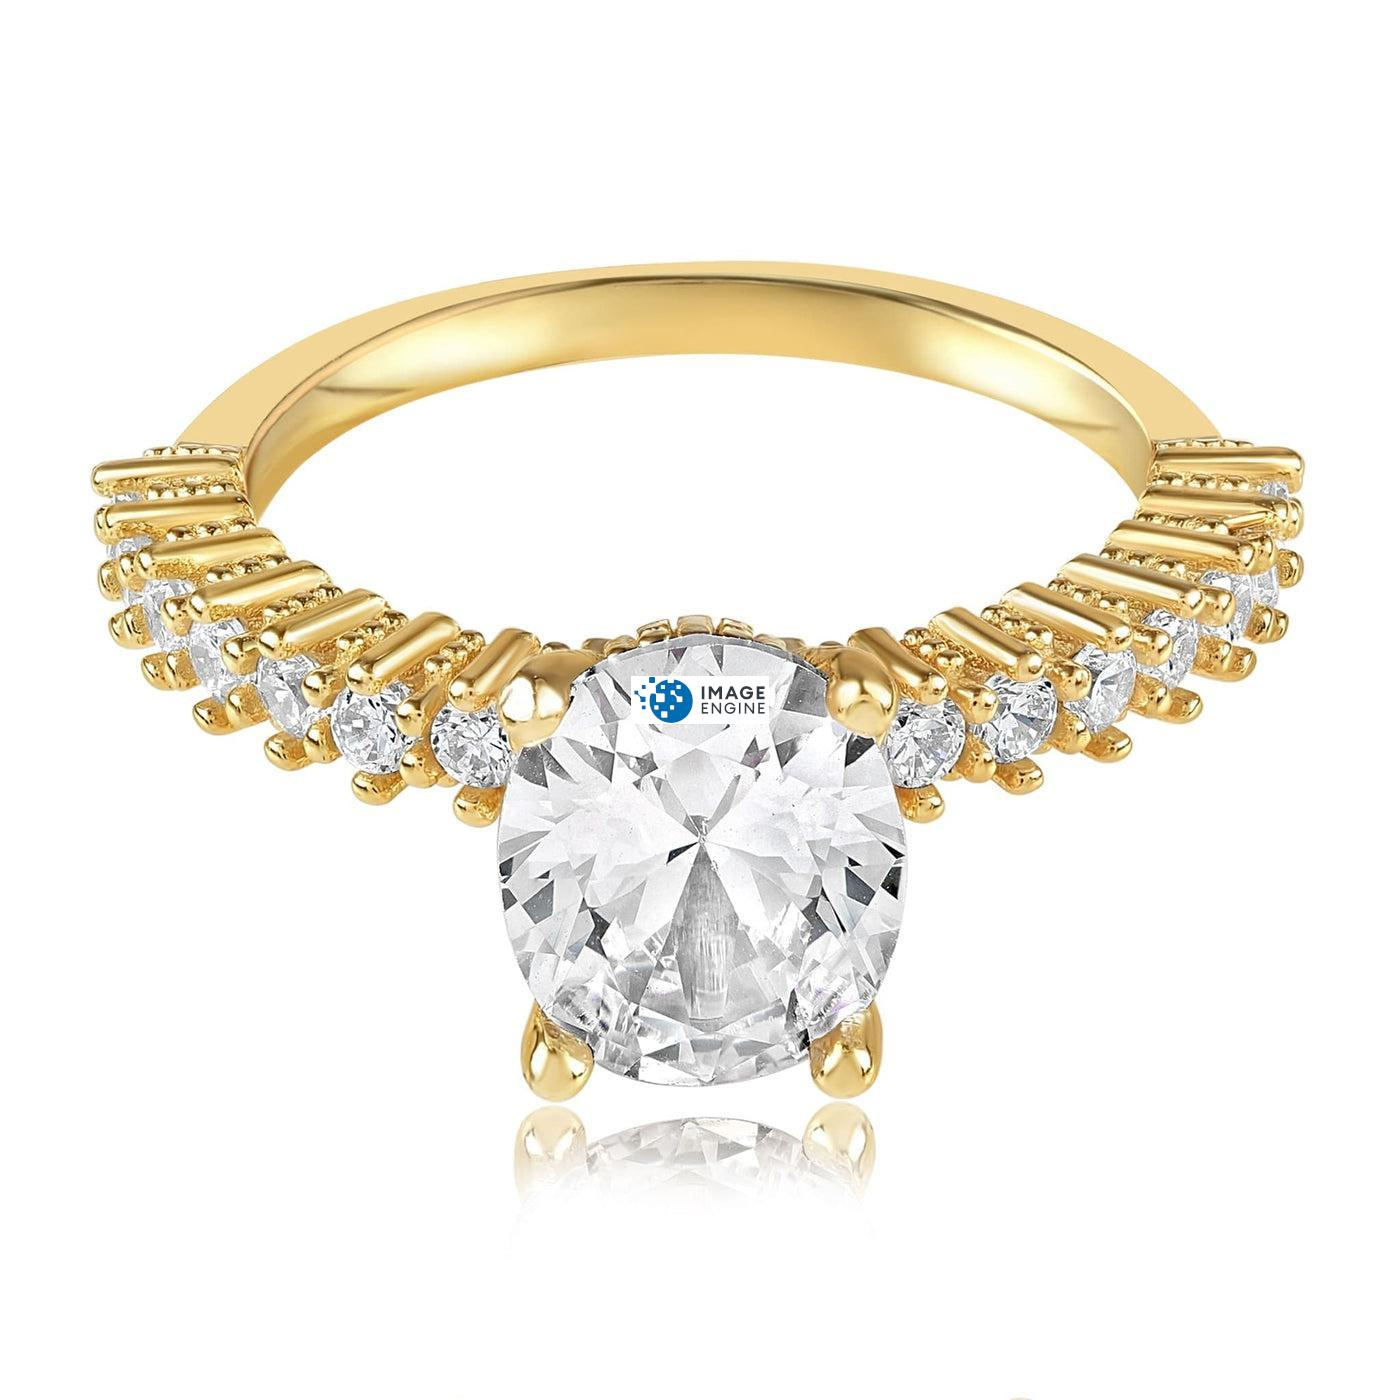 Cara Zirconia Ring - Front View Facing Down - 18K Yellow Gold Vermeil